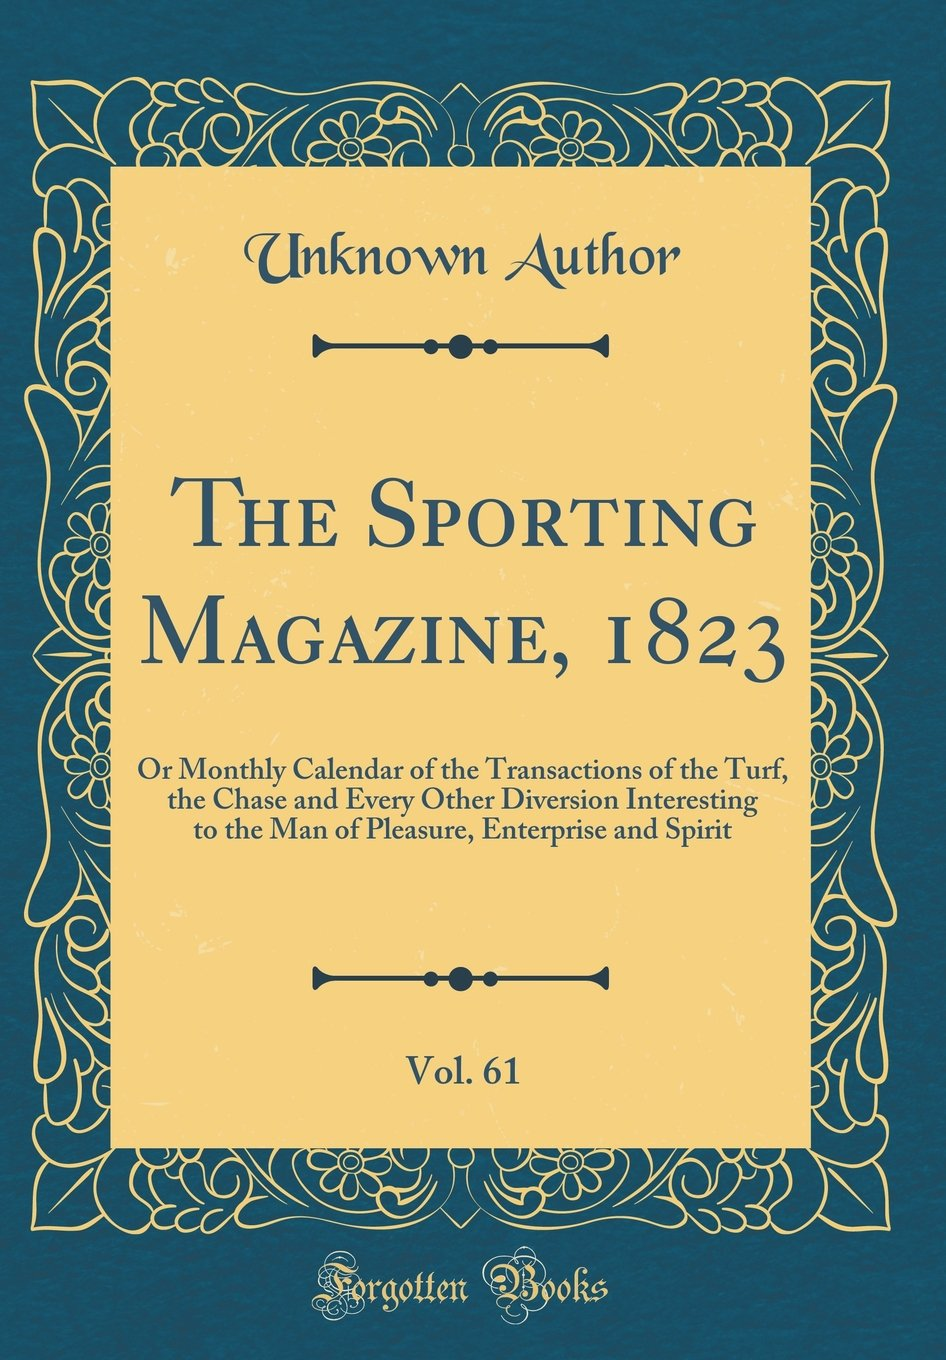 Download The Sporting Magazine, 1823, Vol. 61: Or Monthly Calendar of the Transactions of the Turf, the Chase and Every Other Diversion Interesting to the Man ... Enterprise and Spirit (Classic Reprint) pdf